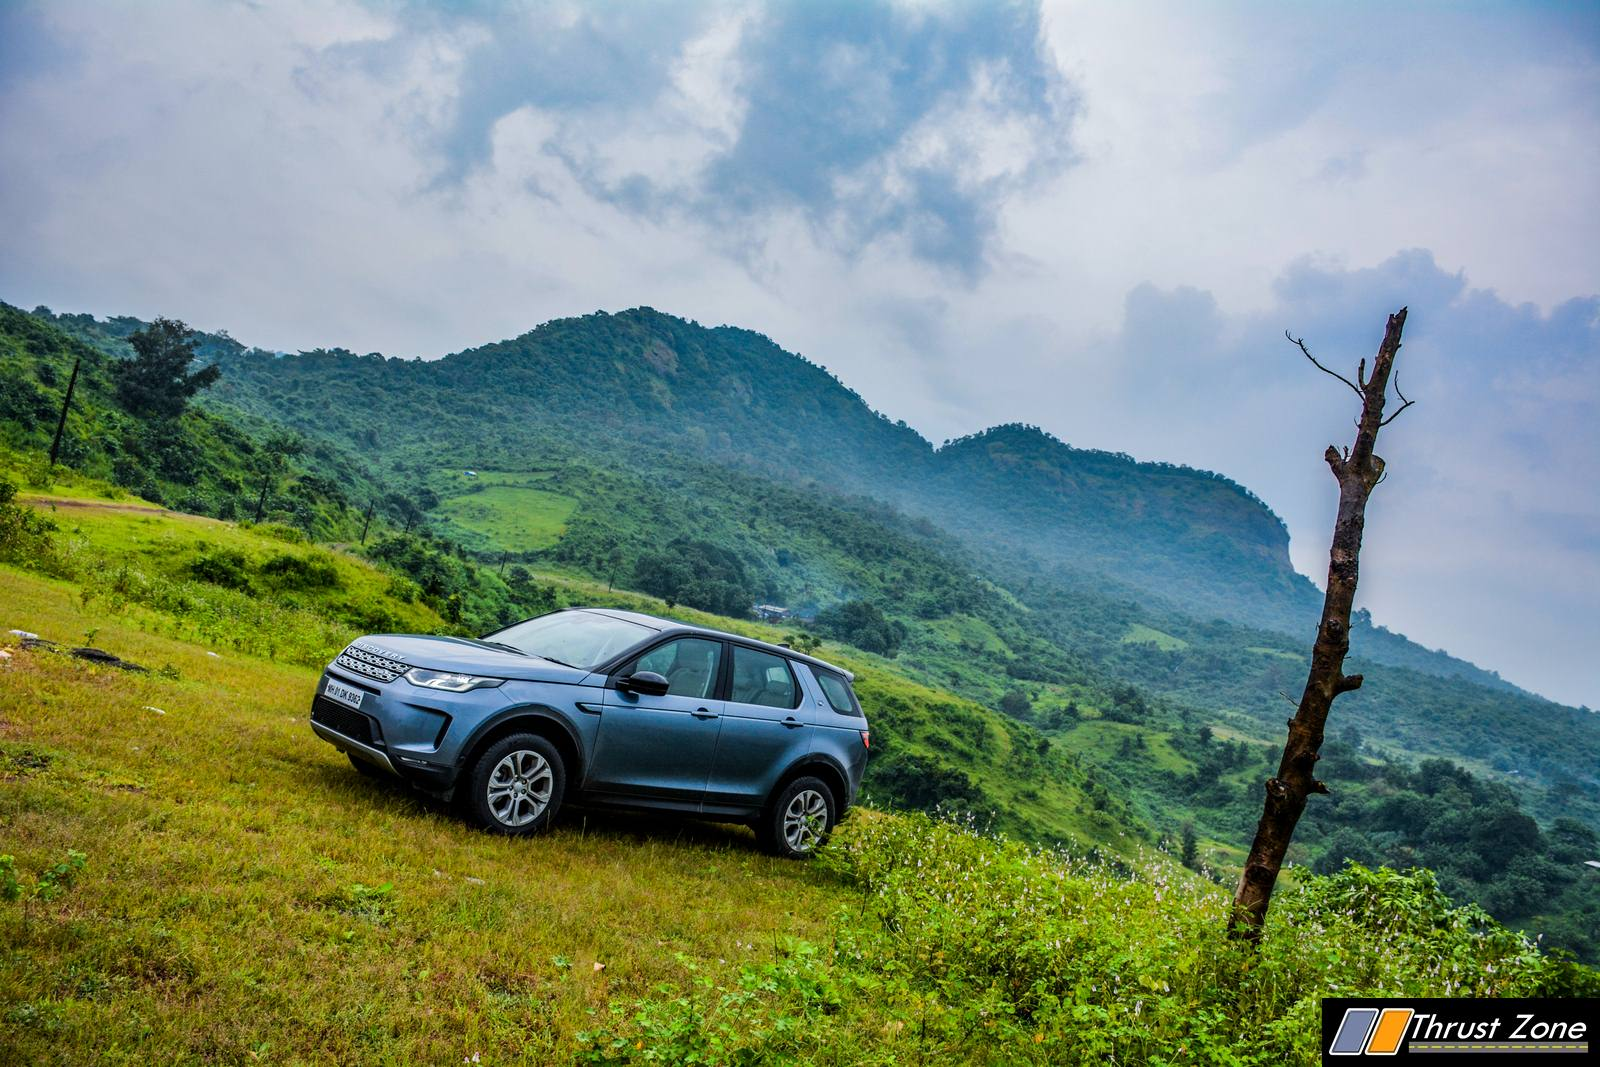 2020-Land-Rover-Discovery-Diesel-India-Review-5